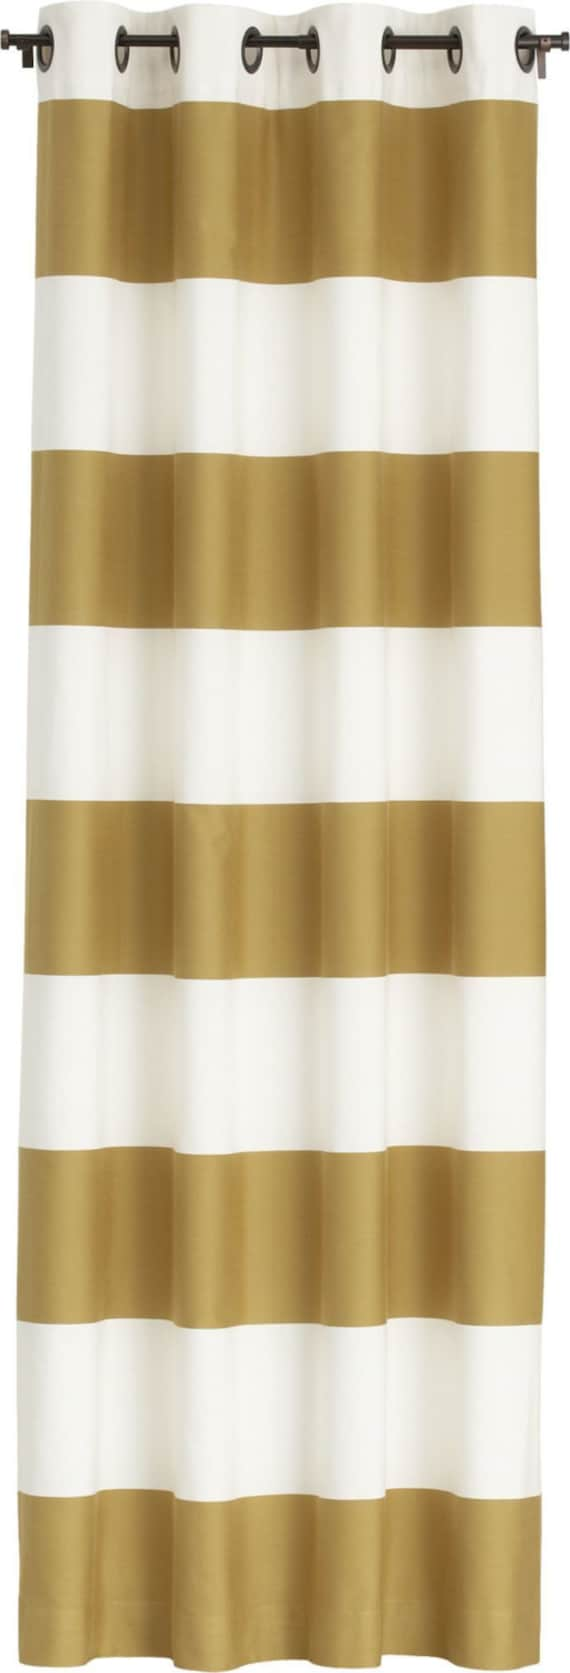 Gold And Soft Creamy White Horizontal Striped Curtain Panel